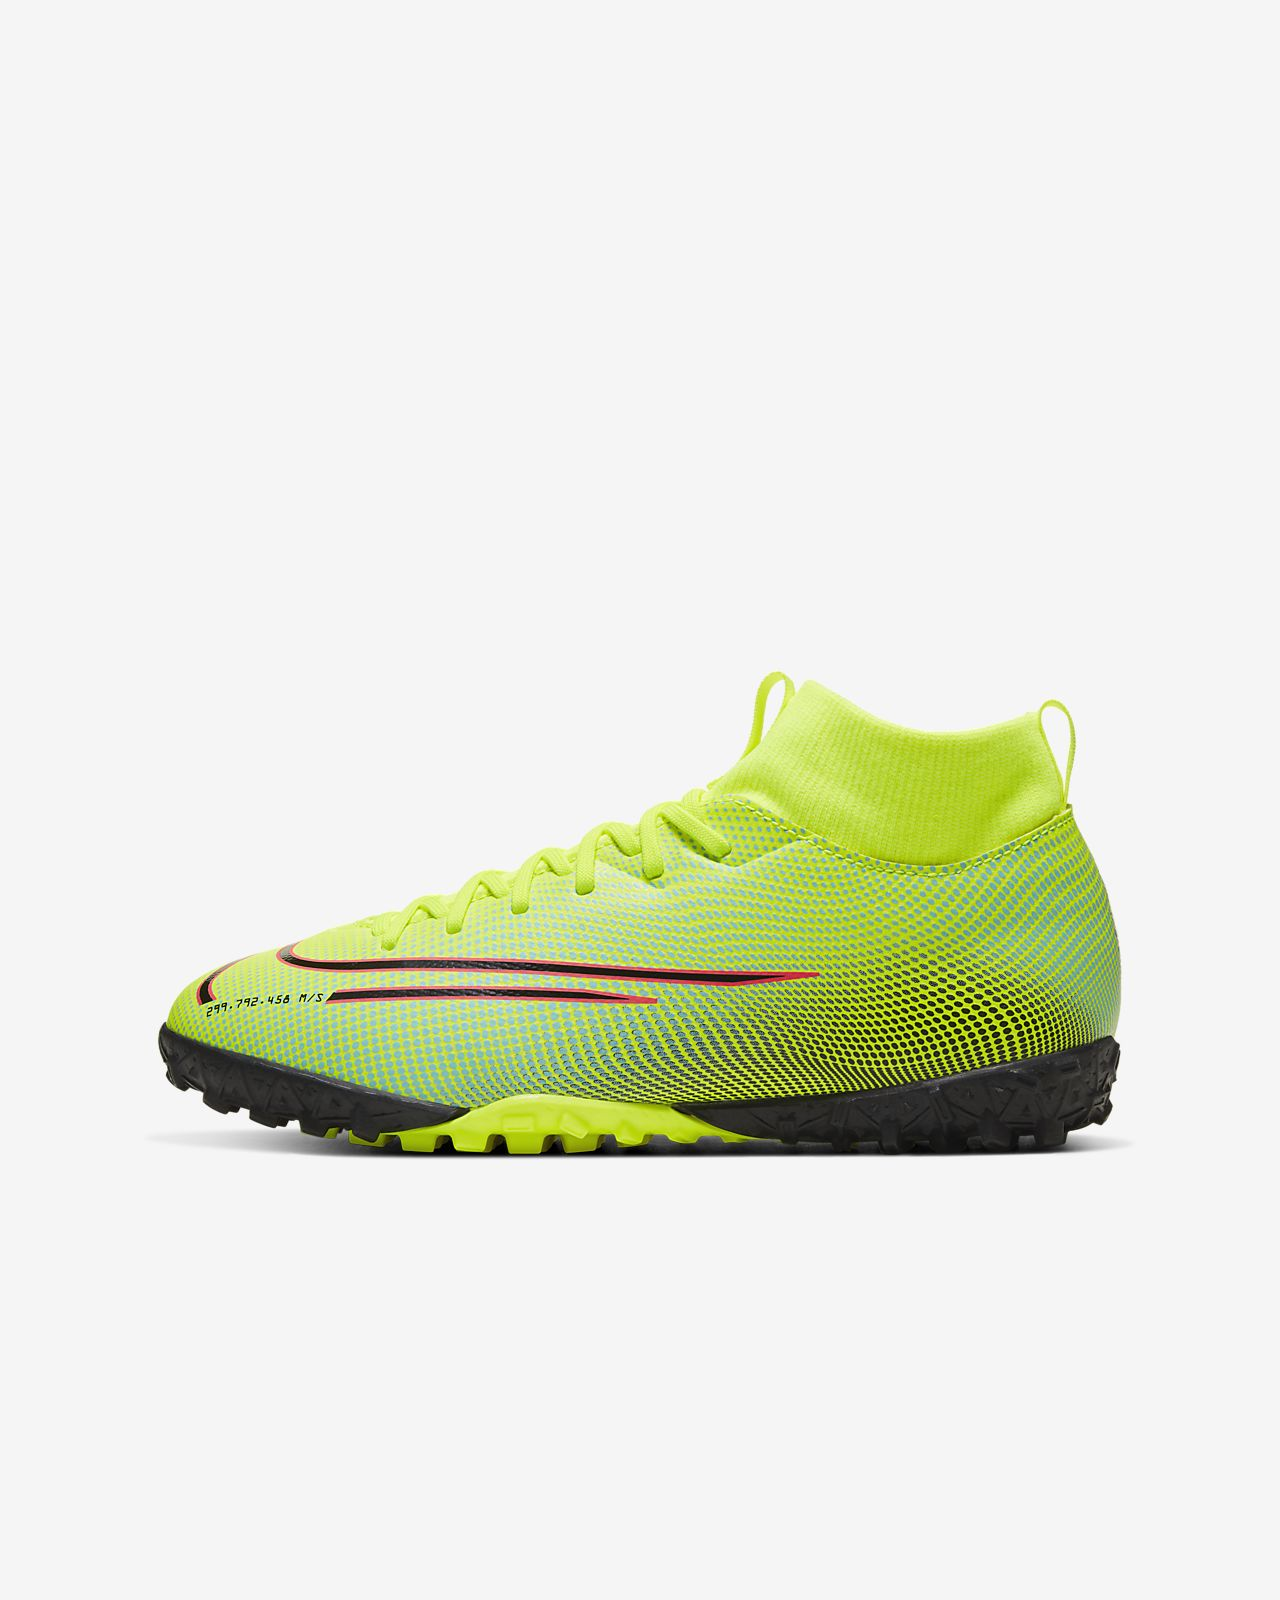 Nike Jr. Mercurial Superfly 7 Academy MDS TF fotballsko for grus/turf til små/store barn